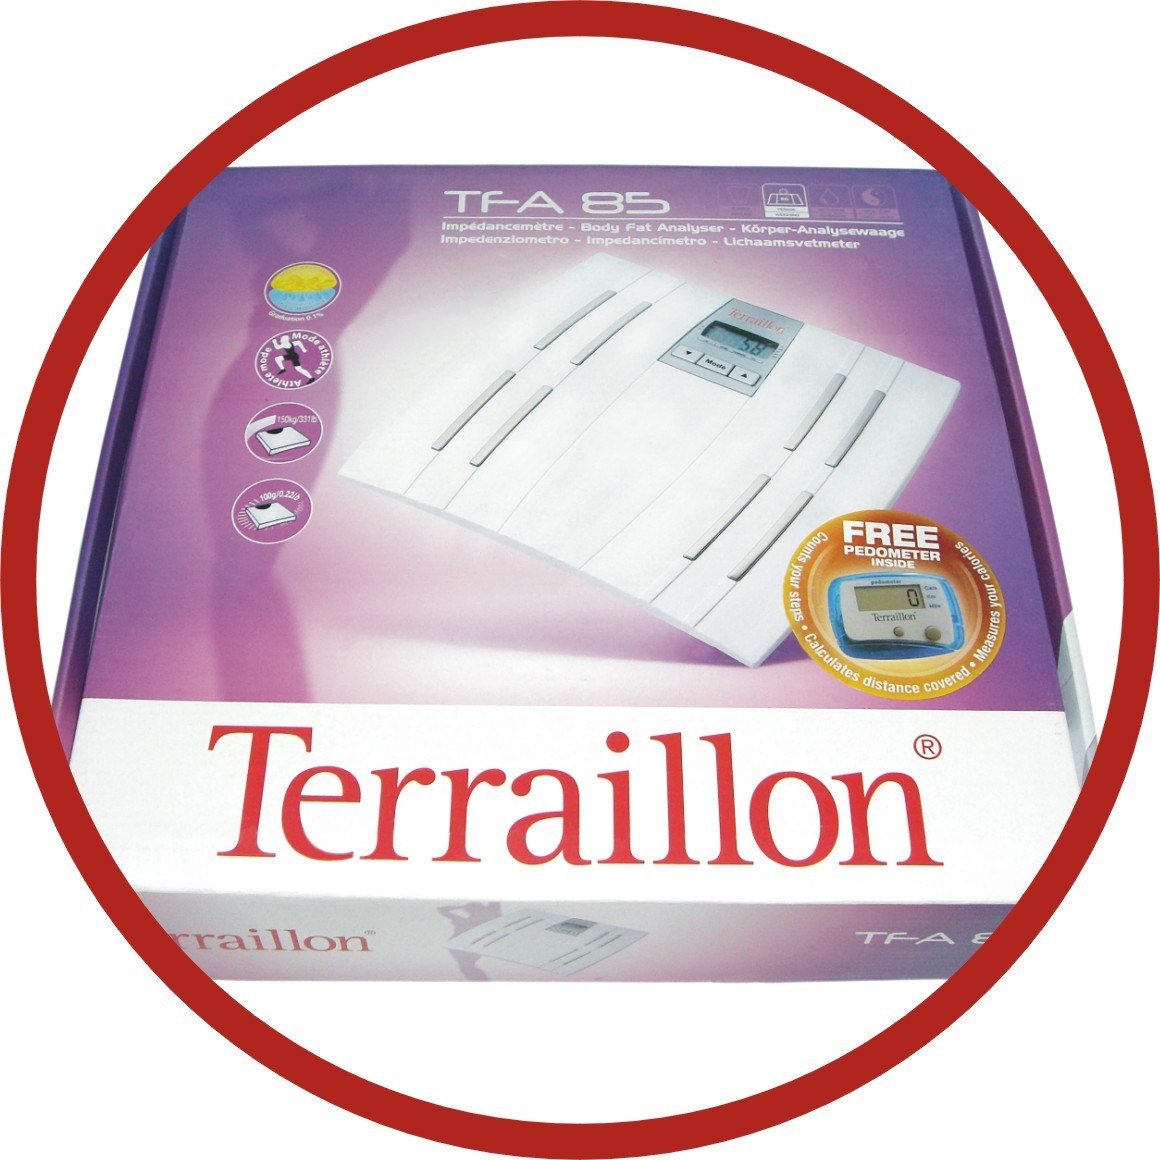 Terraillon Tfa 85 Electronic Bathroom Scale Body Fat Yzer Now At Rm212 00 Only